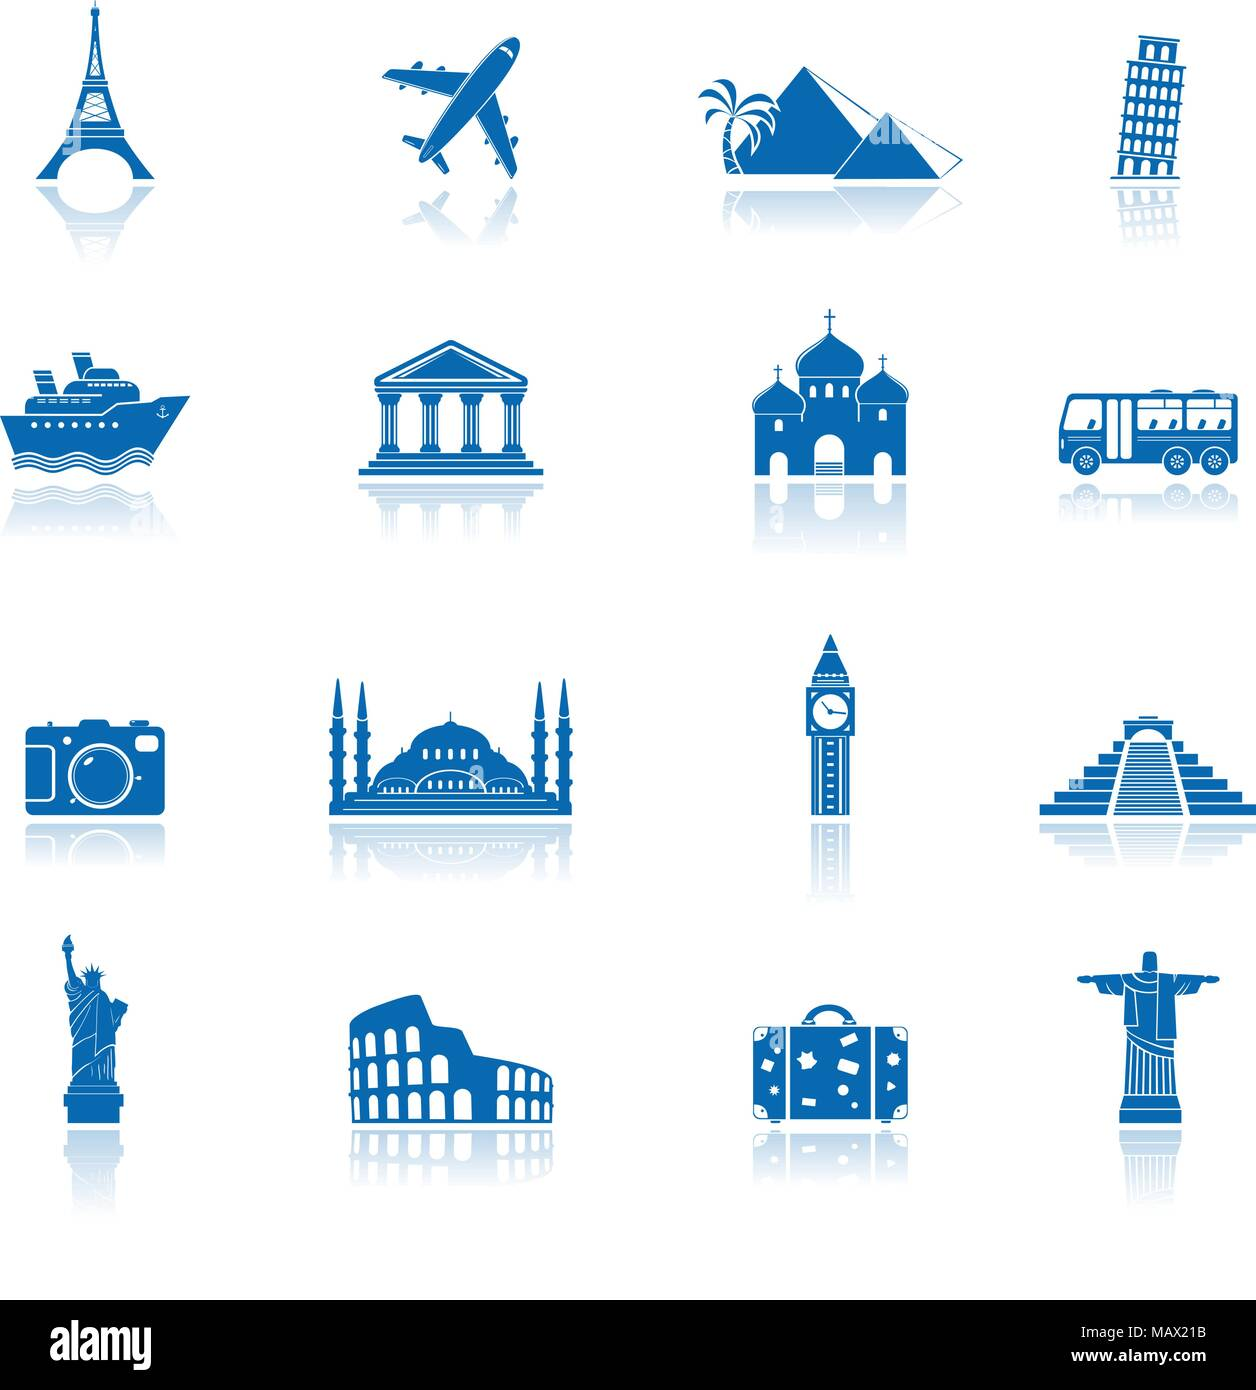 Sights and transportation blue icons with reflection - Stock Image